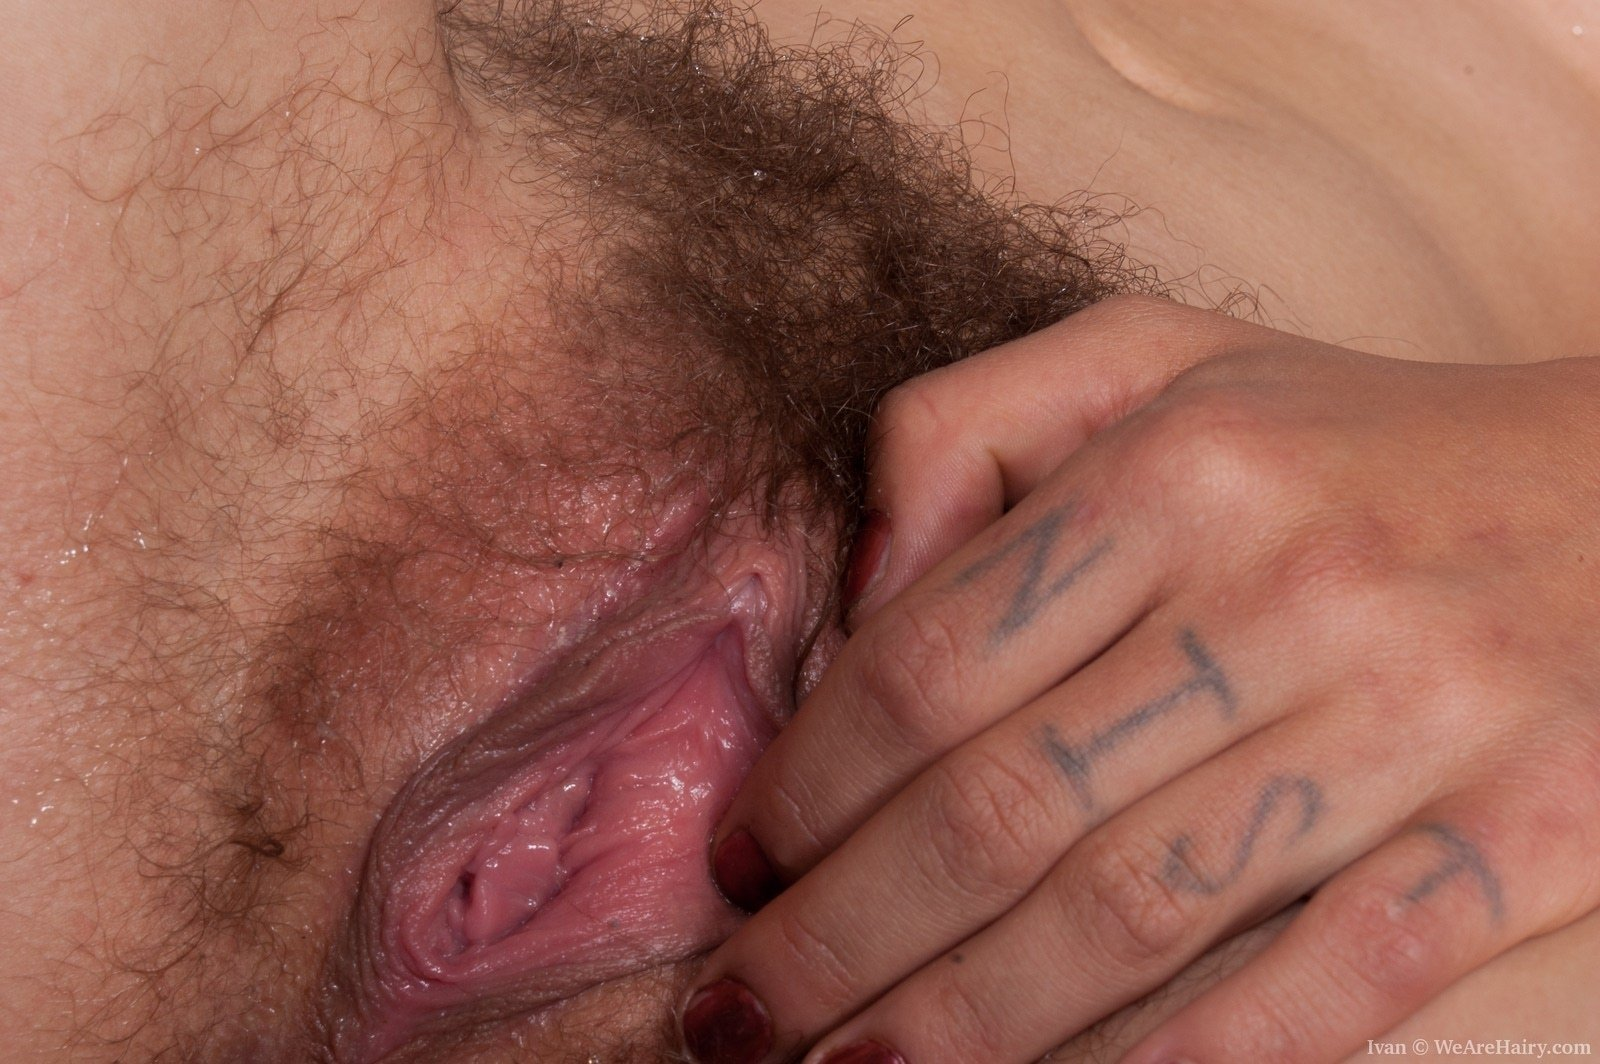 Wife fucked by hubby andre friends